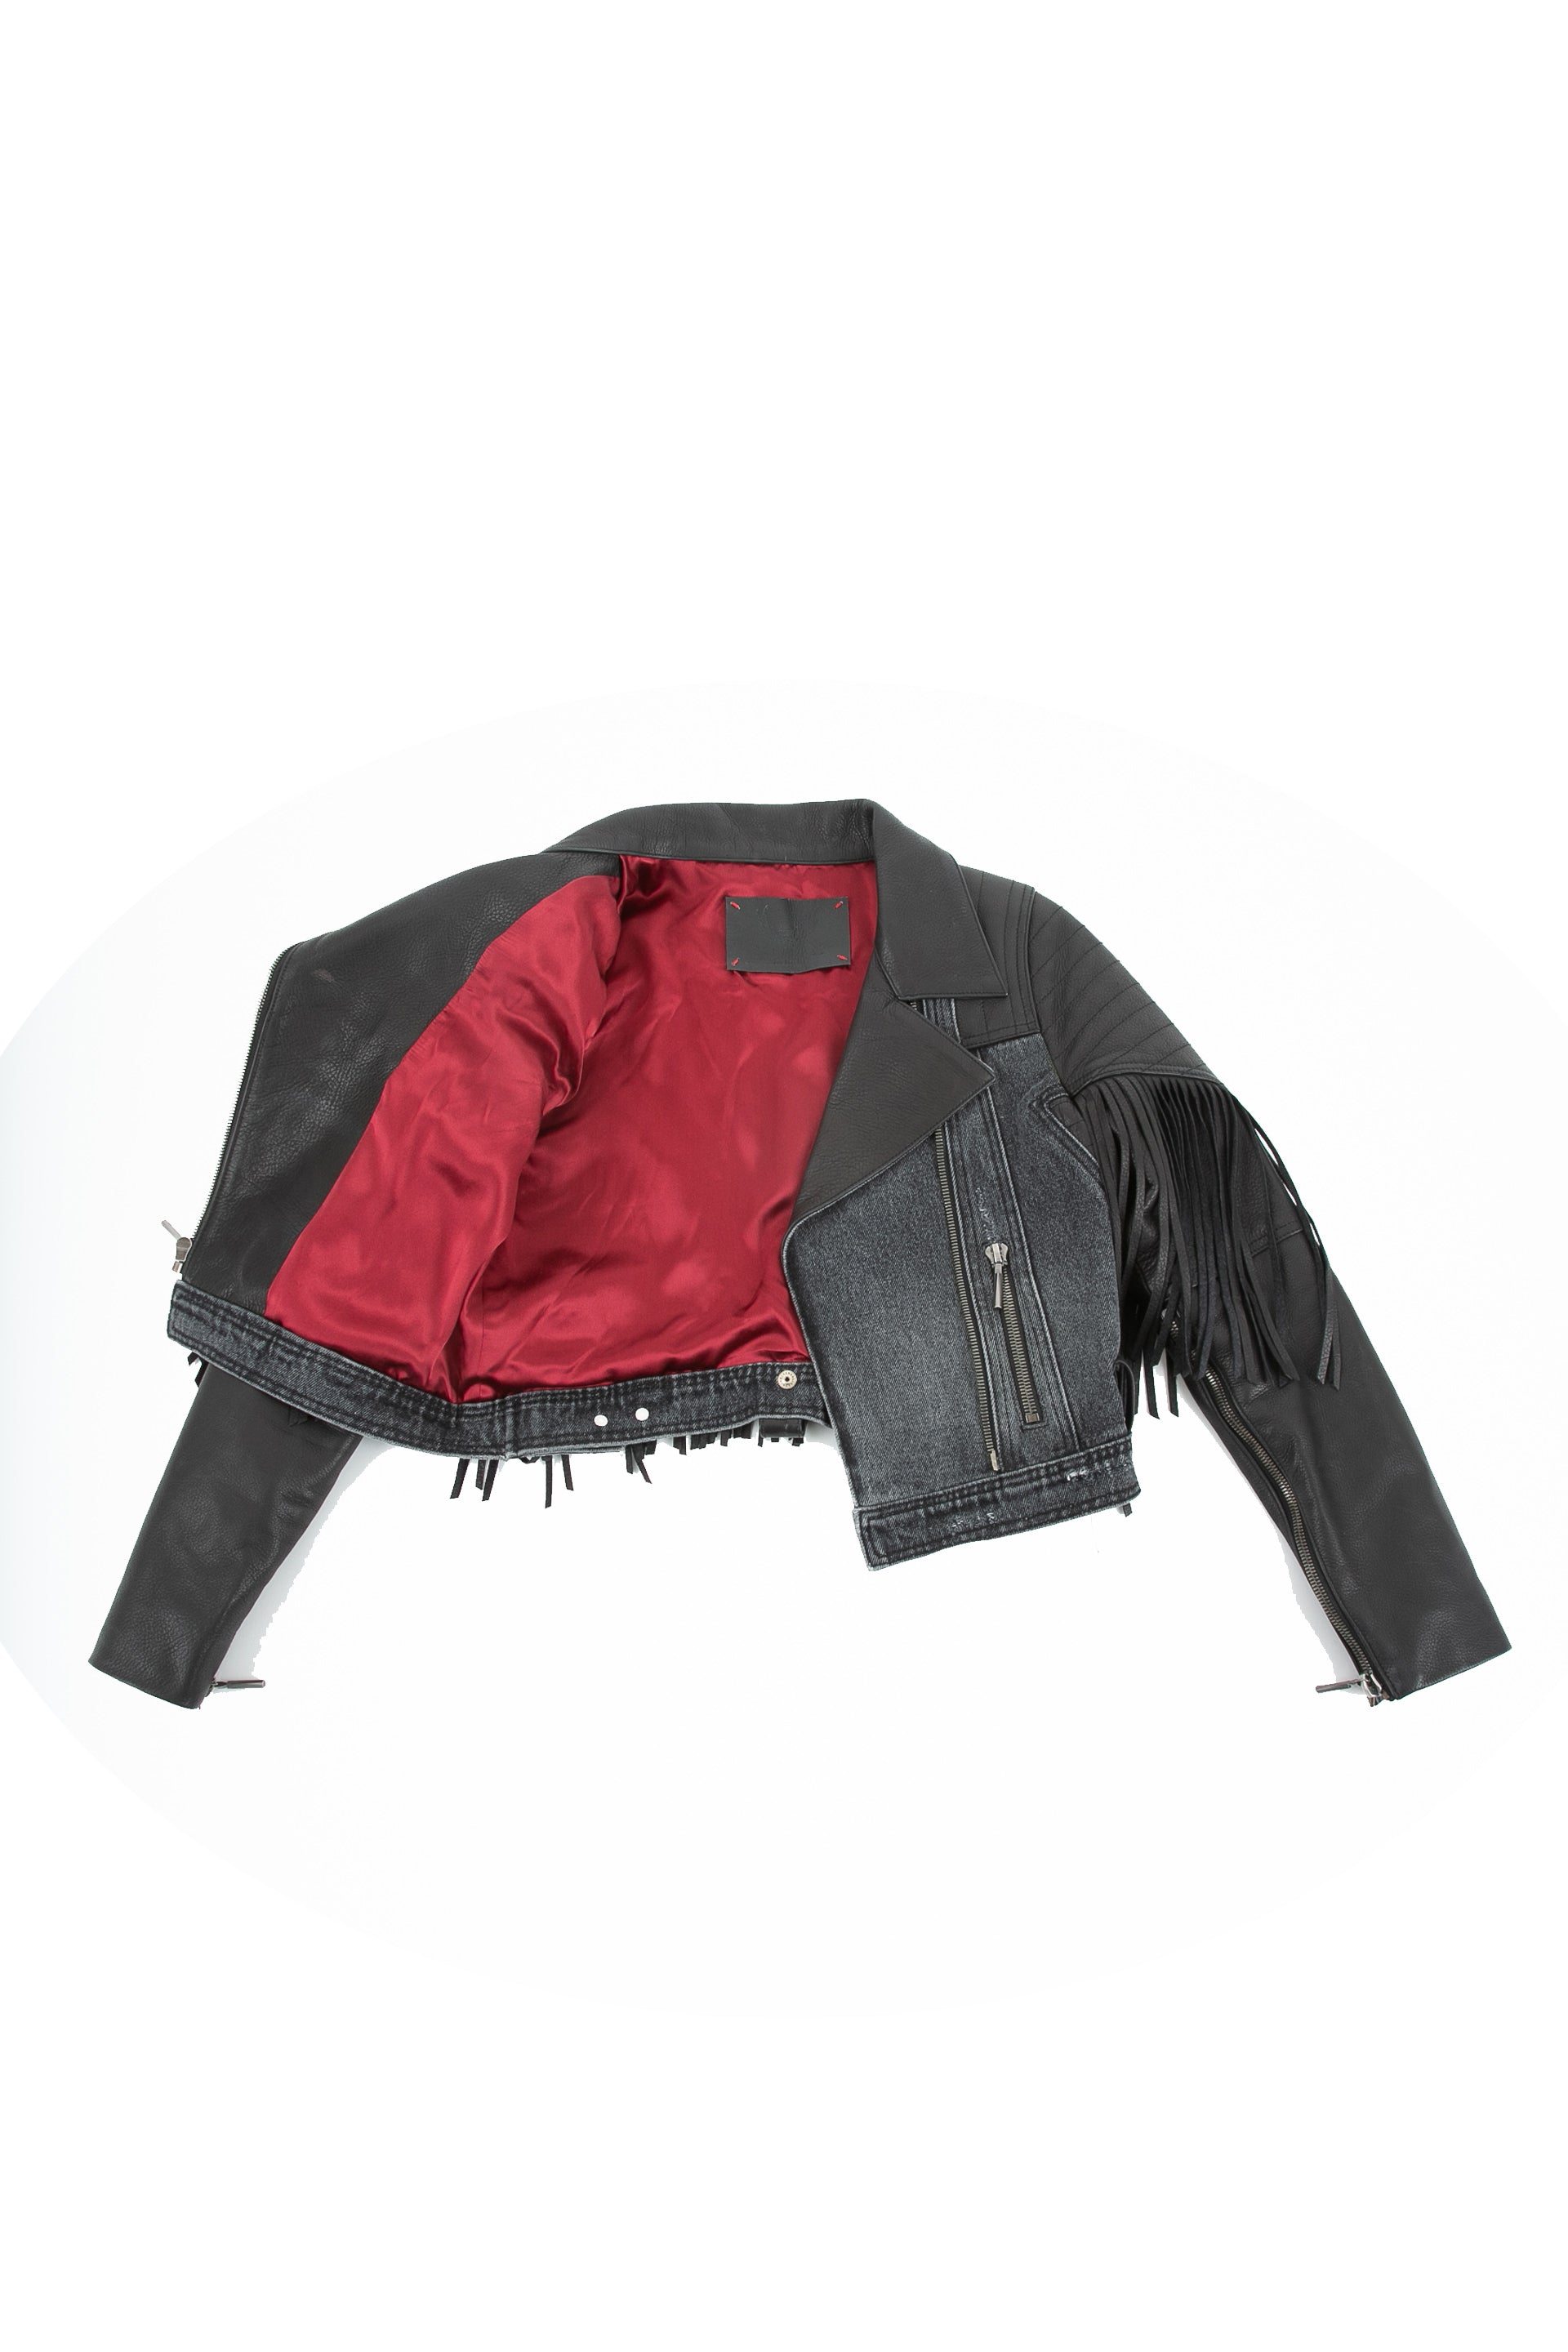 Inside of La Matadora leather jacket